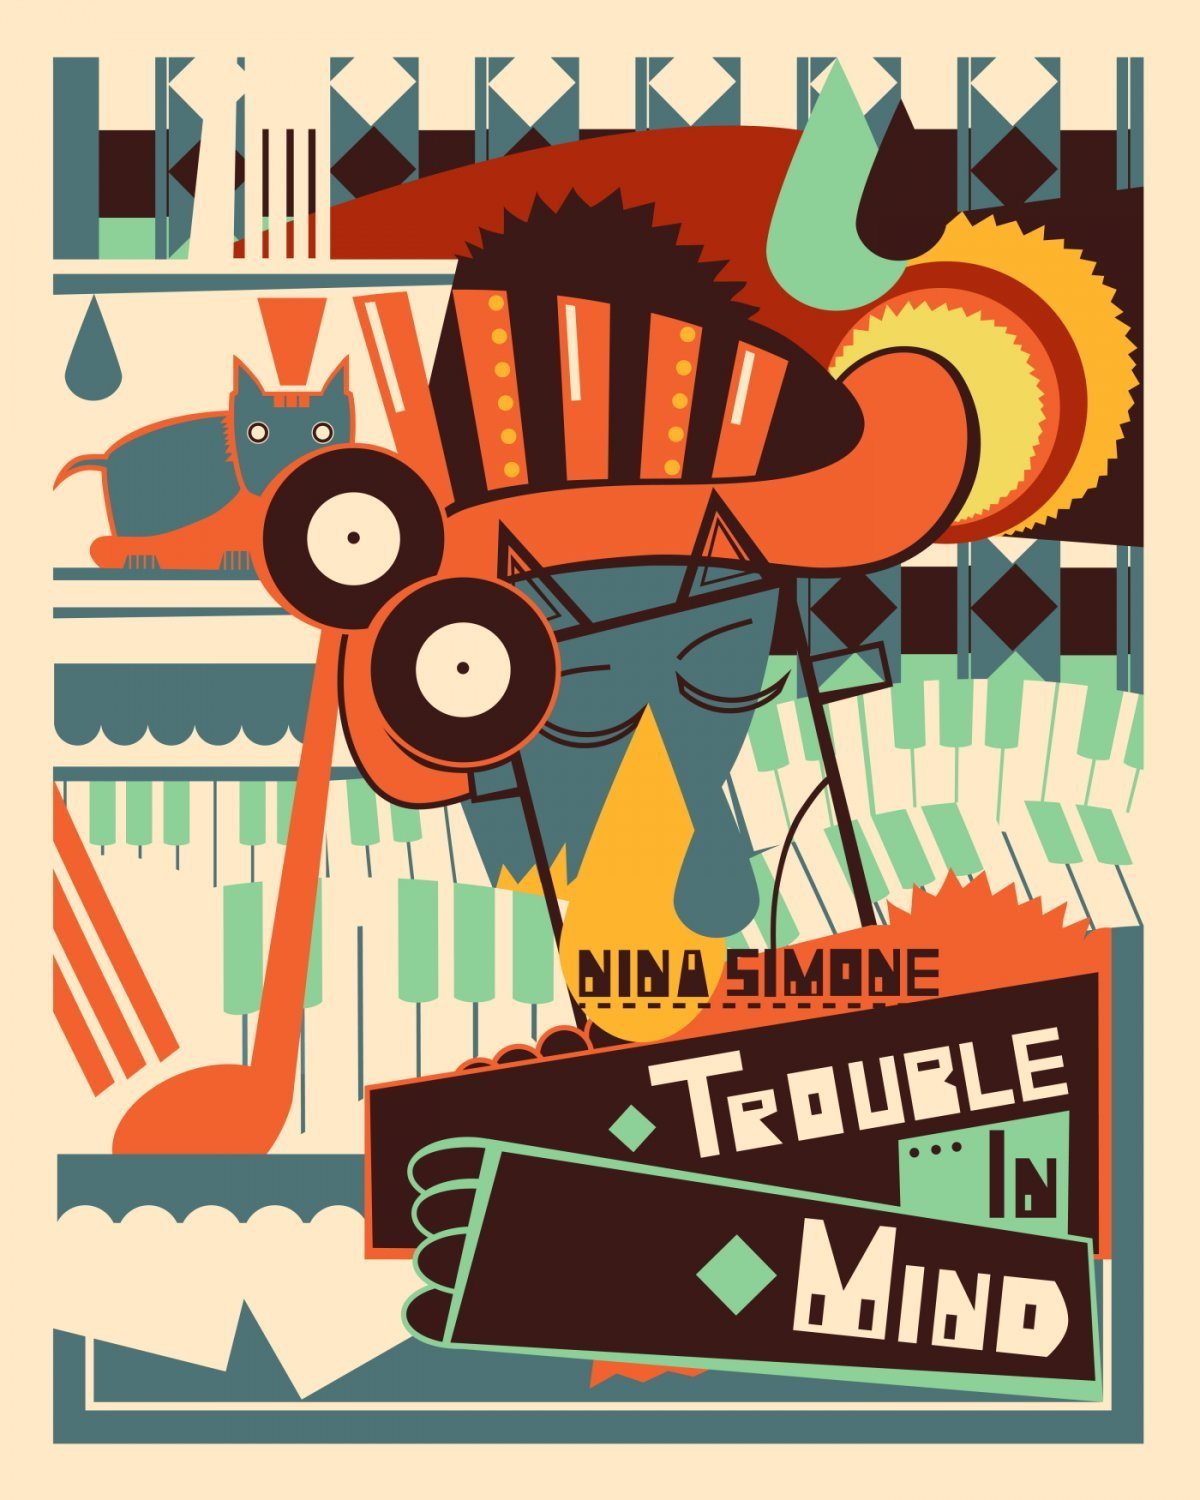 Nina Simone Trouble in Mind Vintage 13x19 inches Poster Print